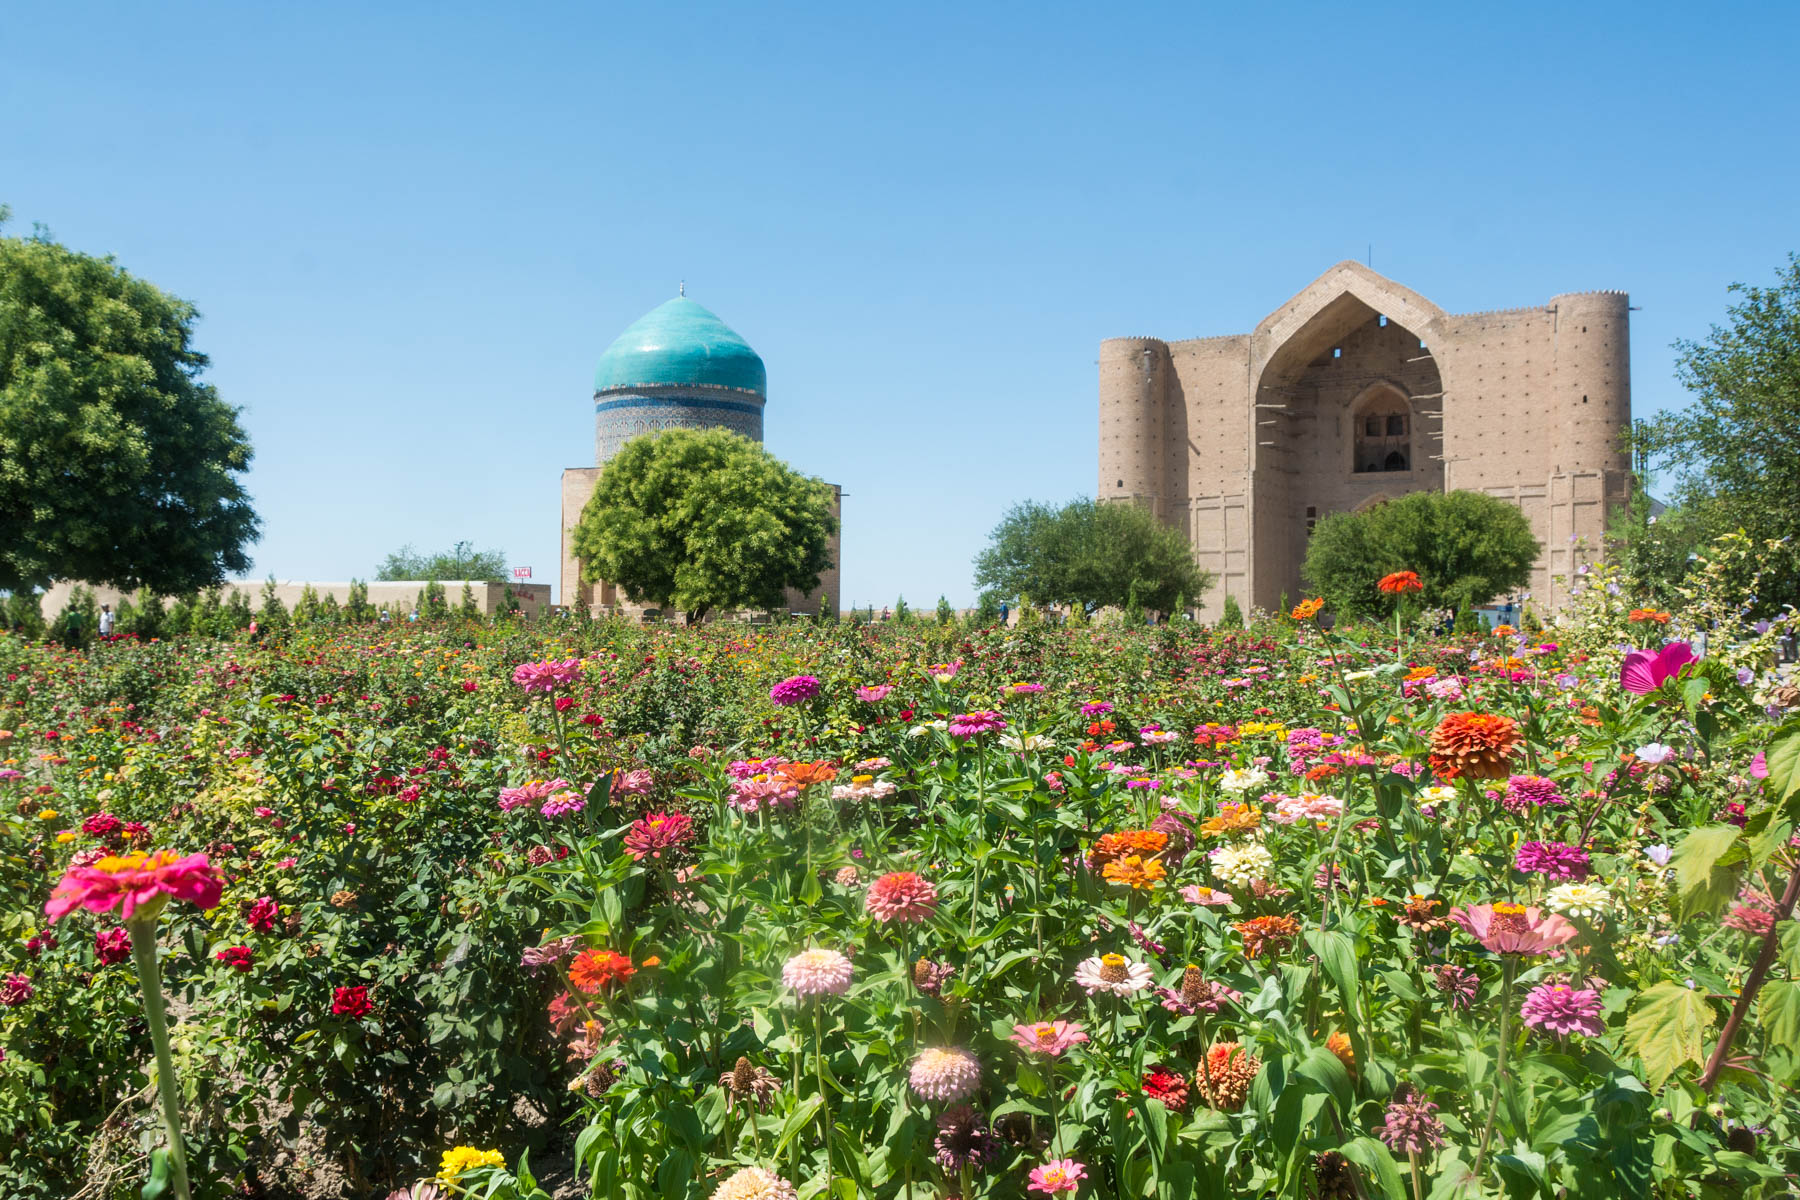 Flowers at the Khoja Ahmed Yasawi mosque in Turkestan, Kazakhstan - Lost With Purpose